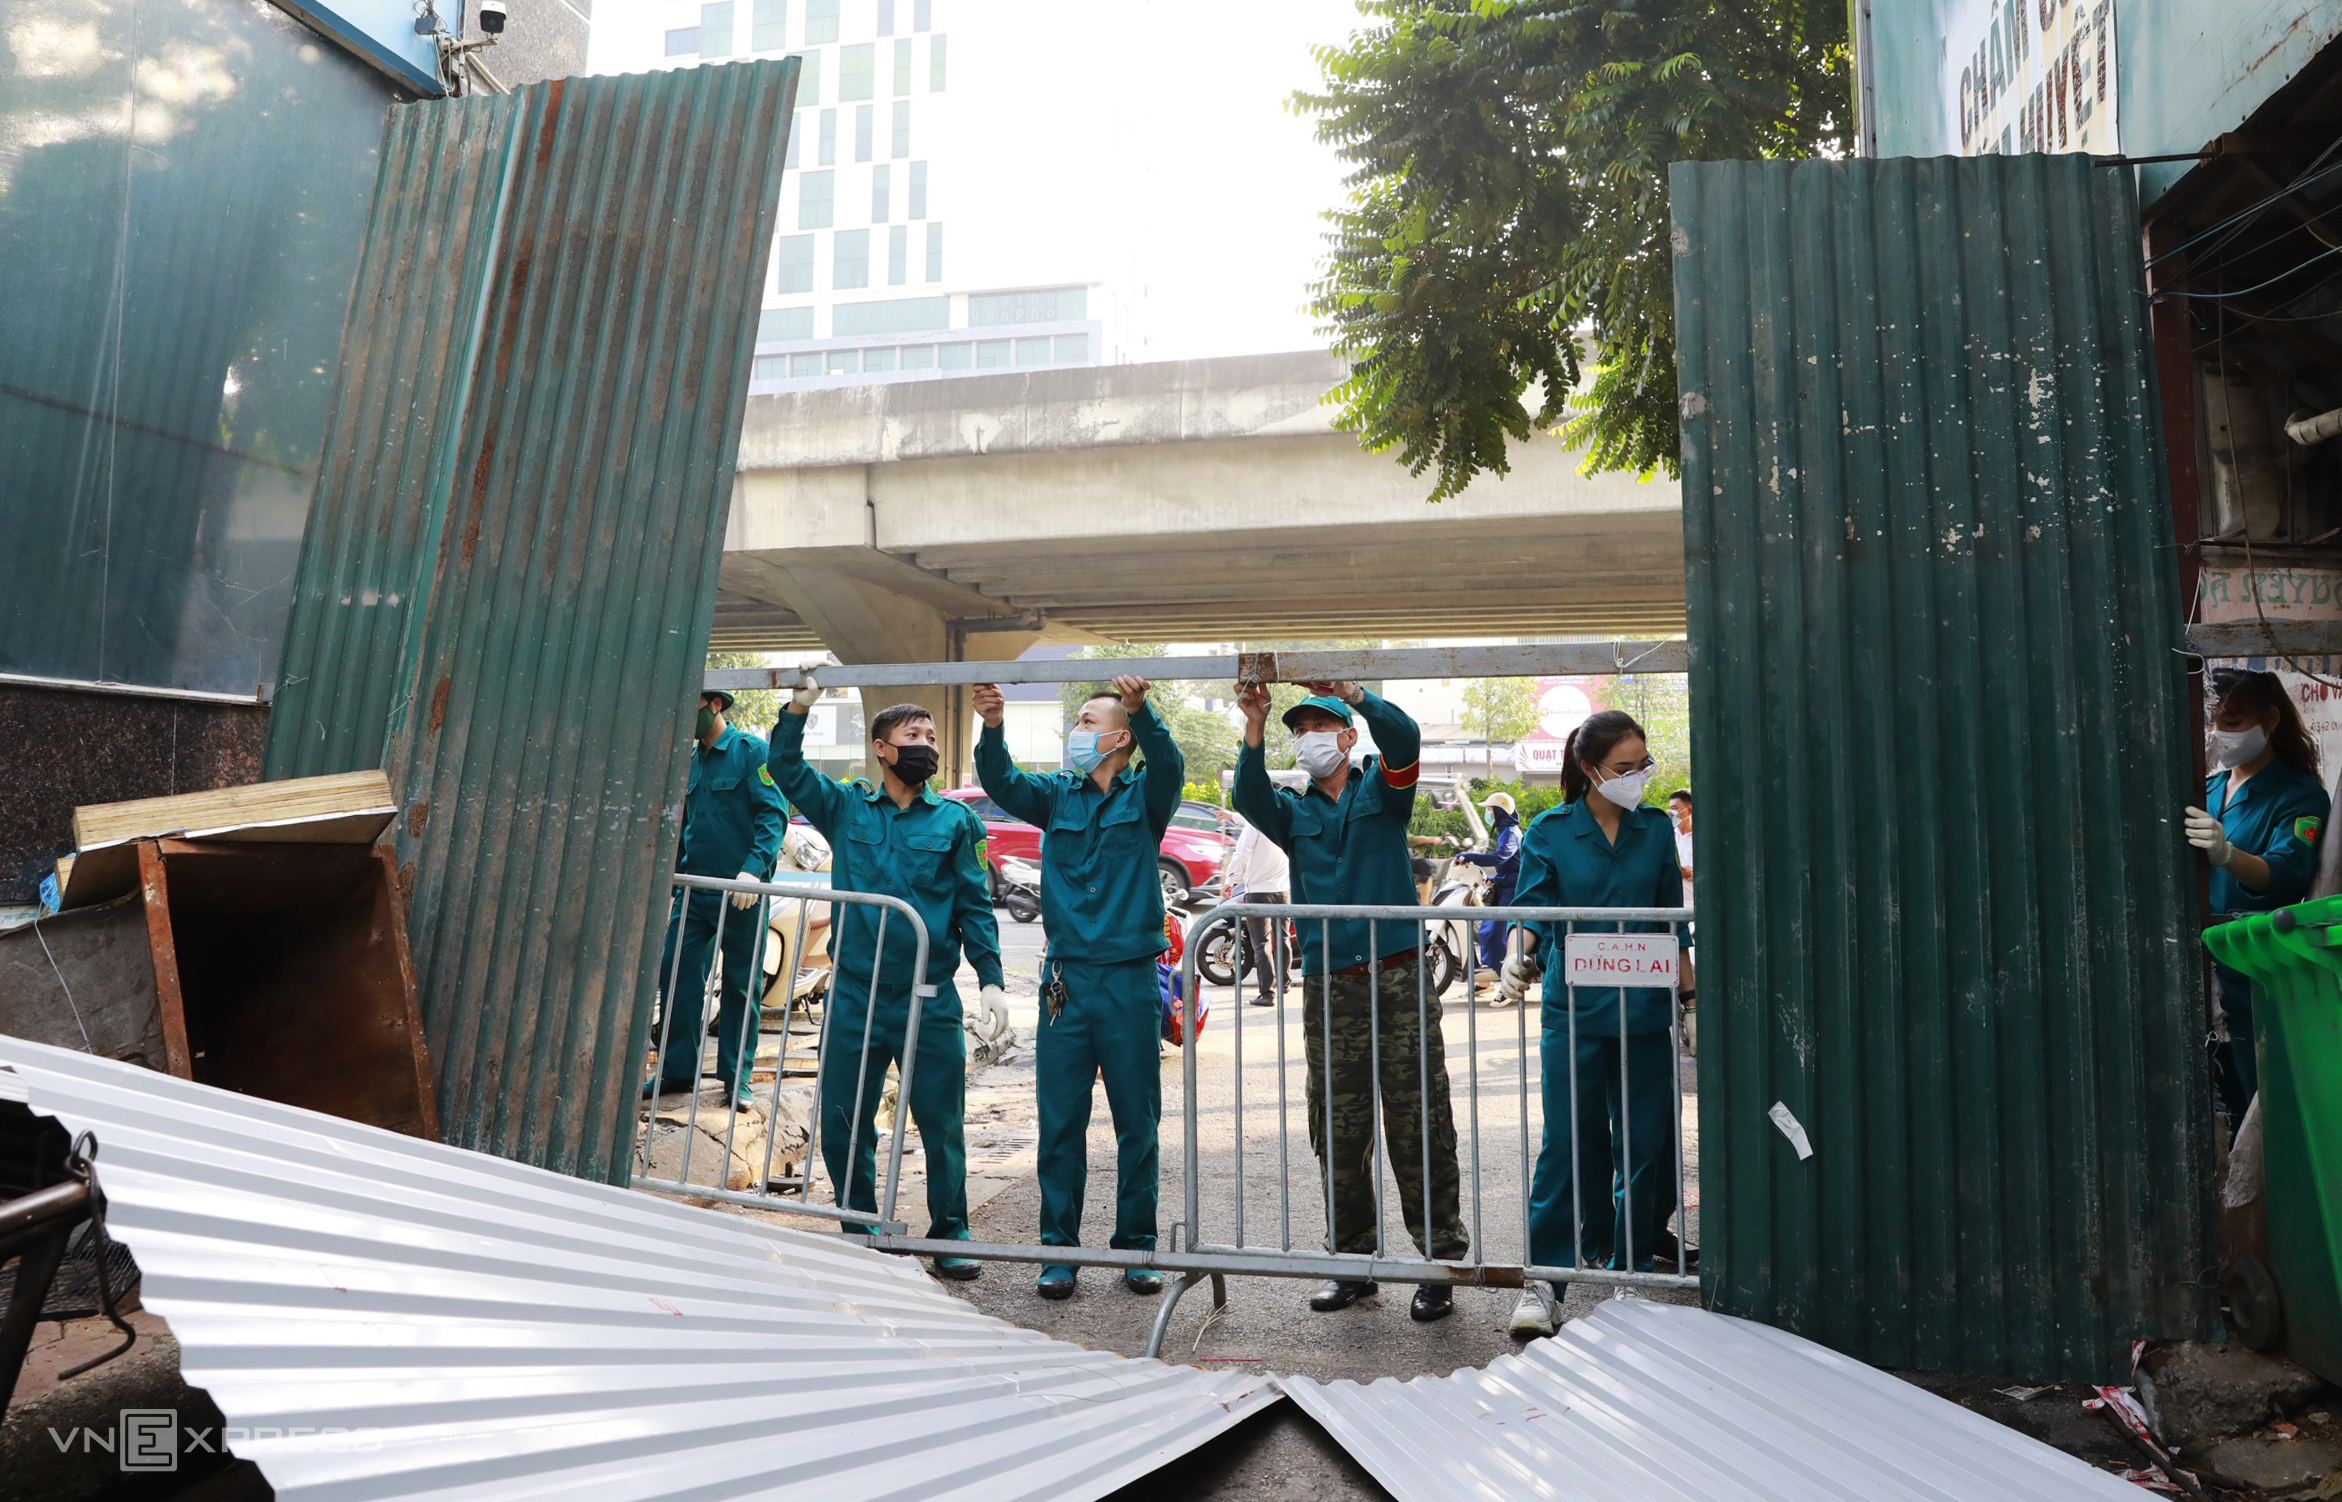 A task force removes a makeshift barrier to blockade an area with Covid-19 in Thanh Xuan Bac Ward of Thanh Xuan District in Hanoi, September 21, 2021. Photo by VnExpress/Ngoc Thanh